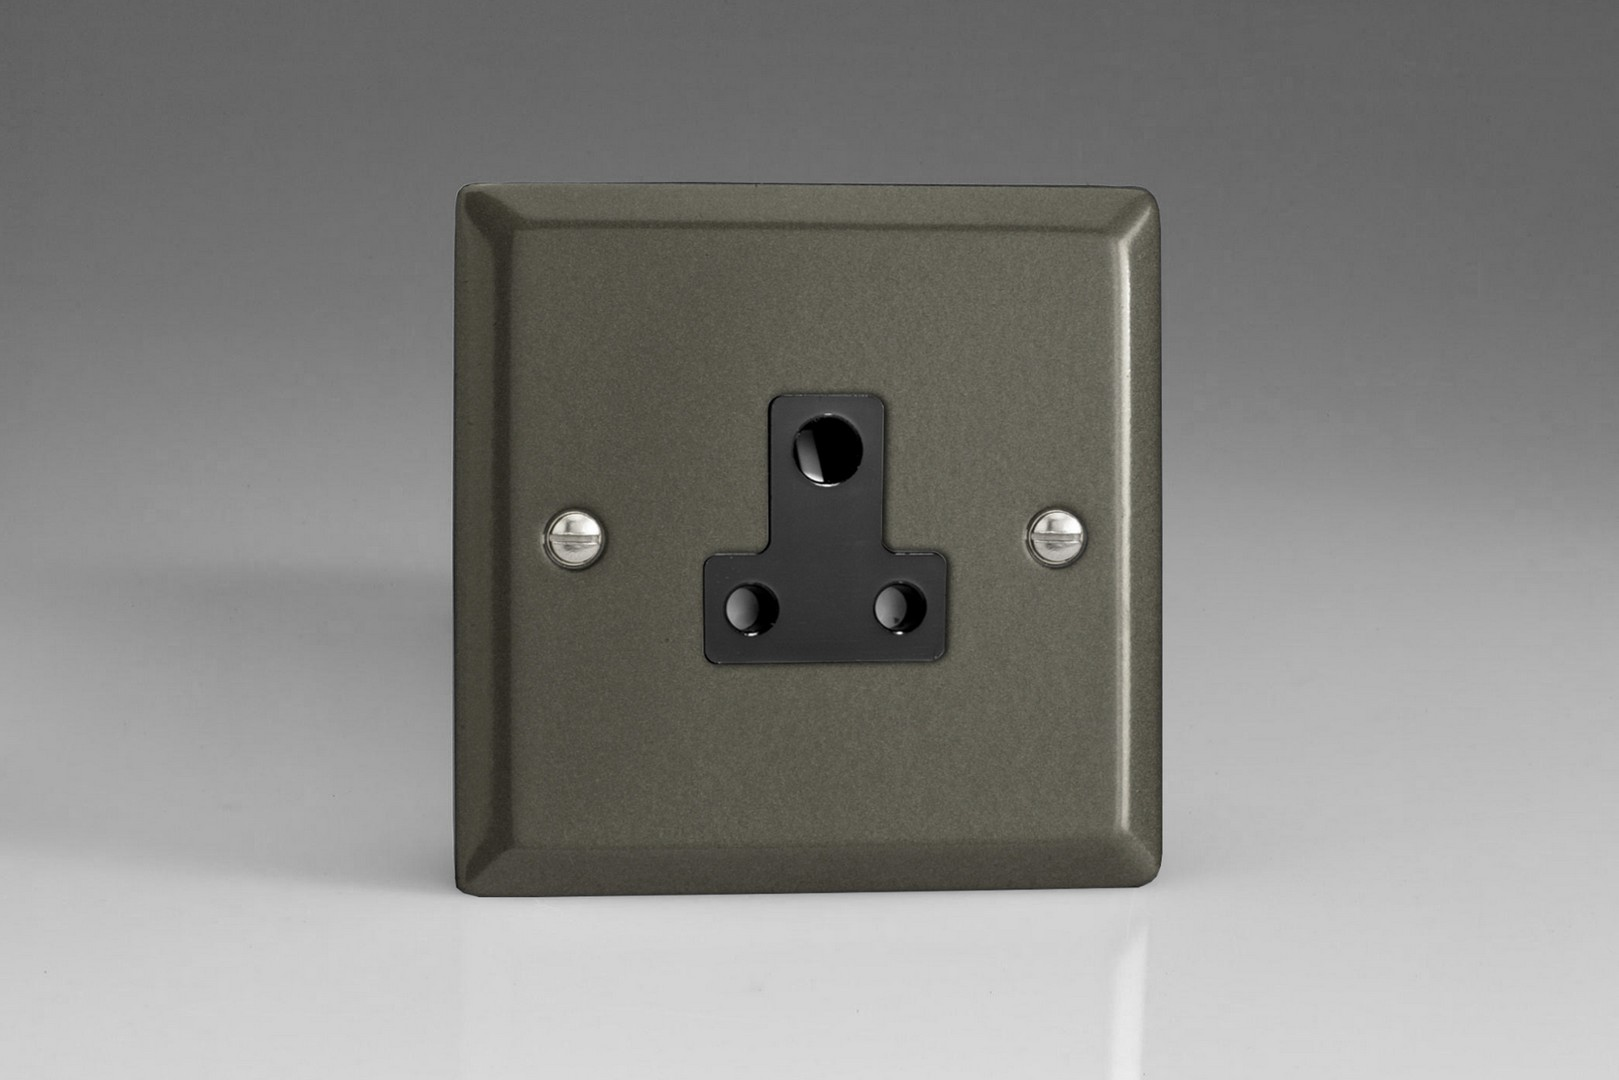 XPRP5AB Varilight 1-Gang 5A Round Pin Socket Classic Graphite 21